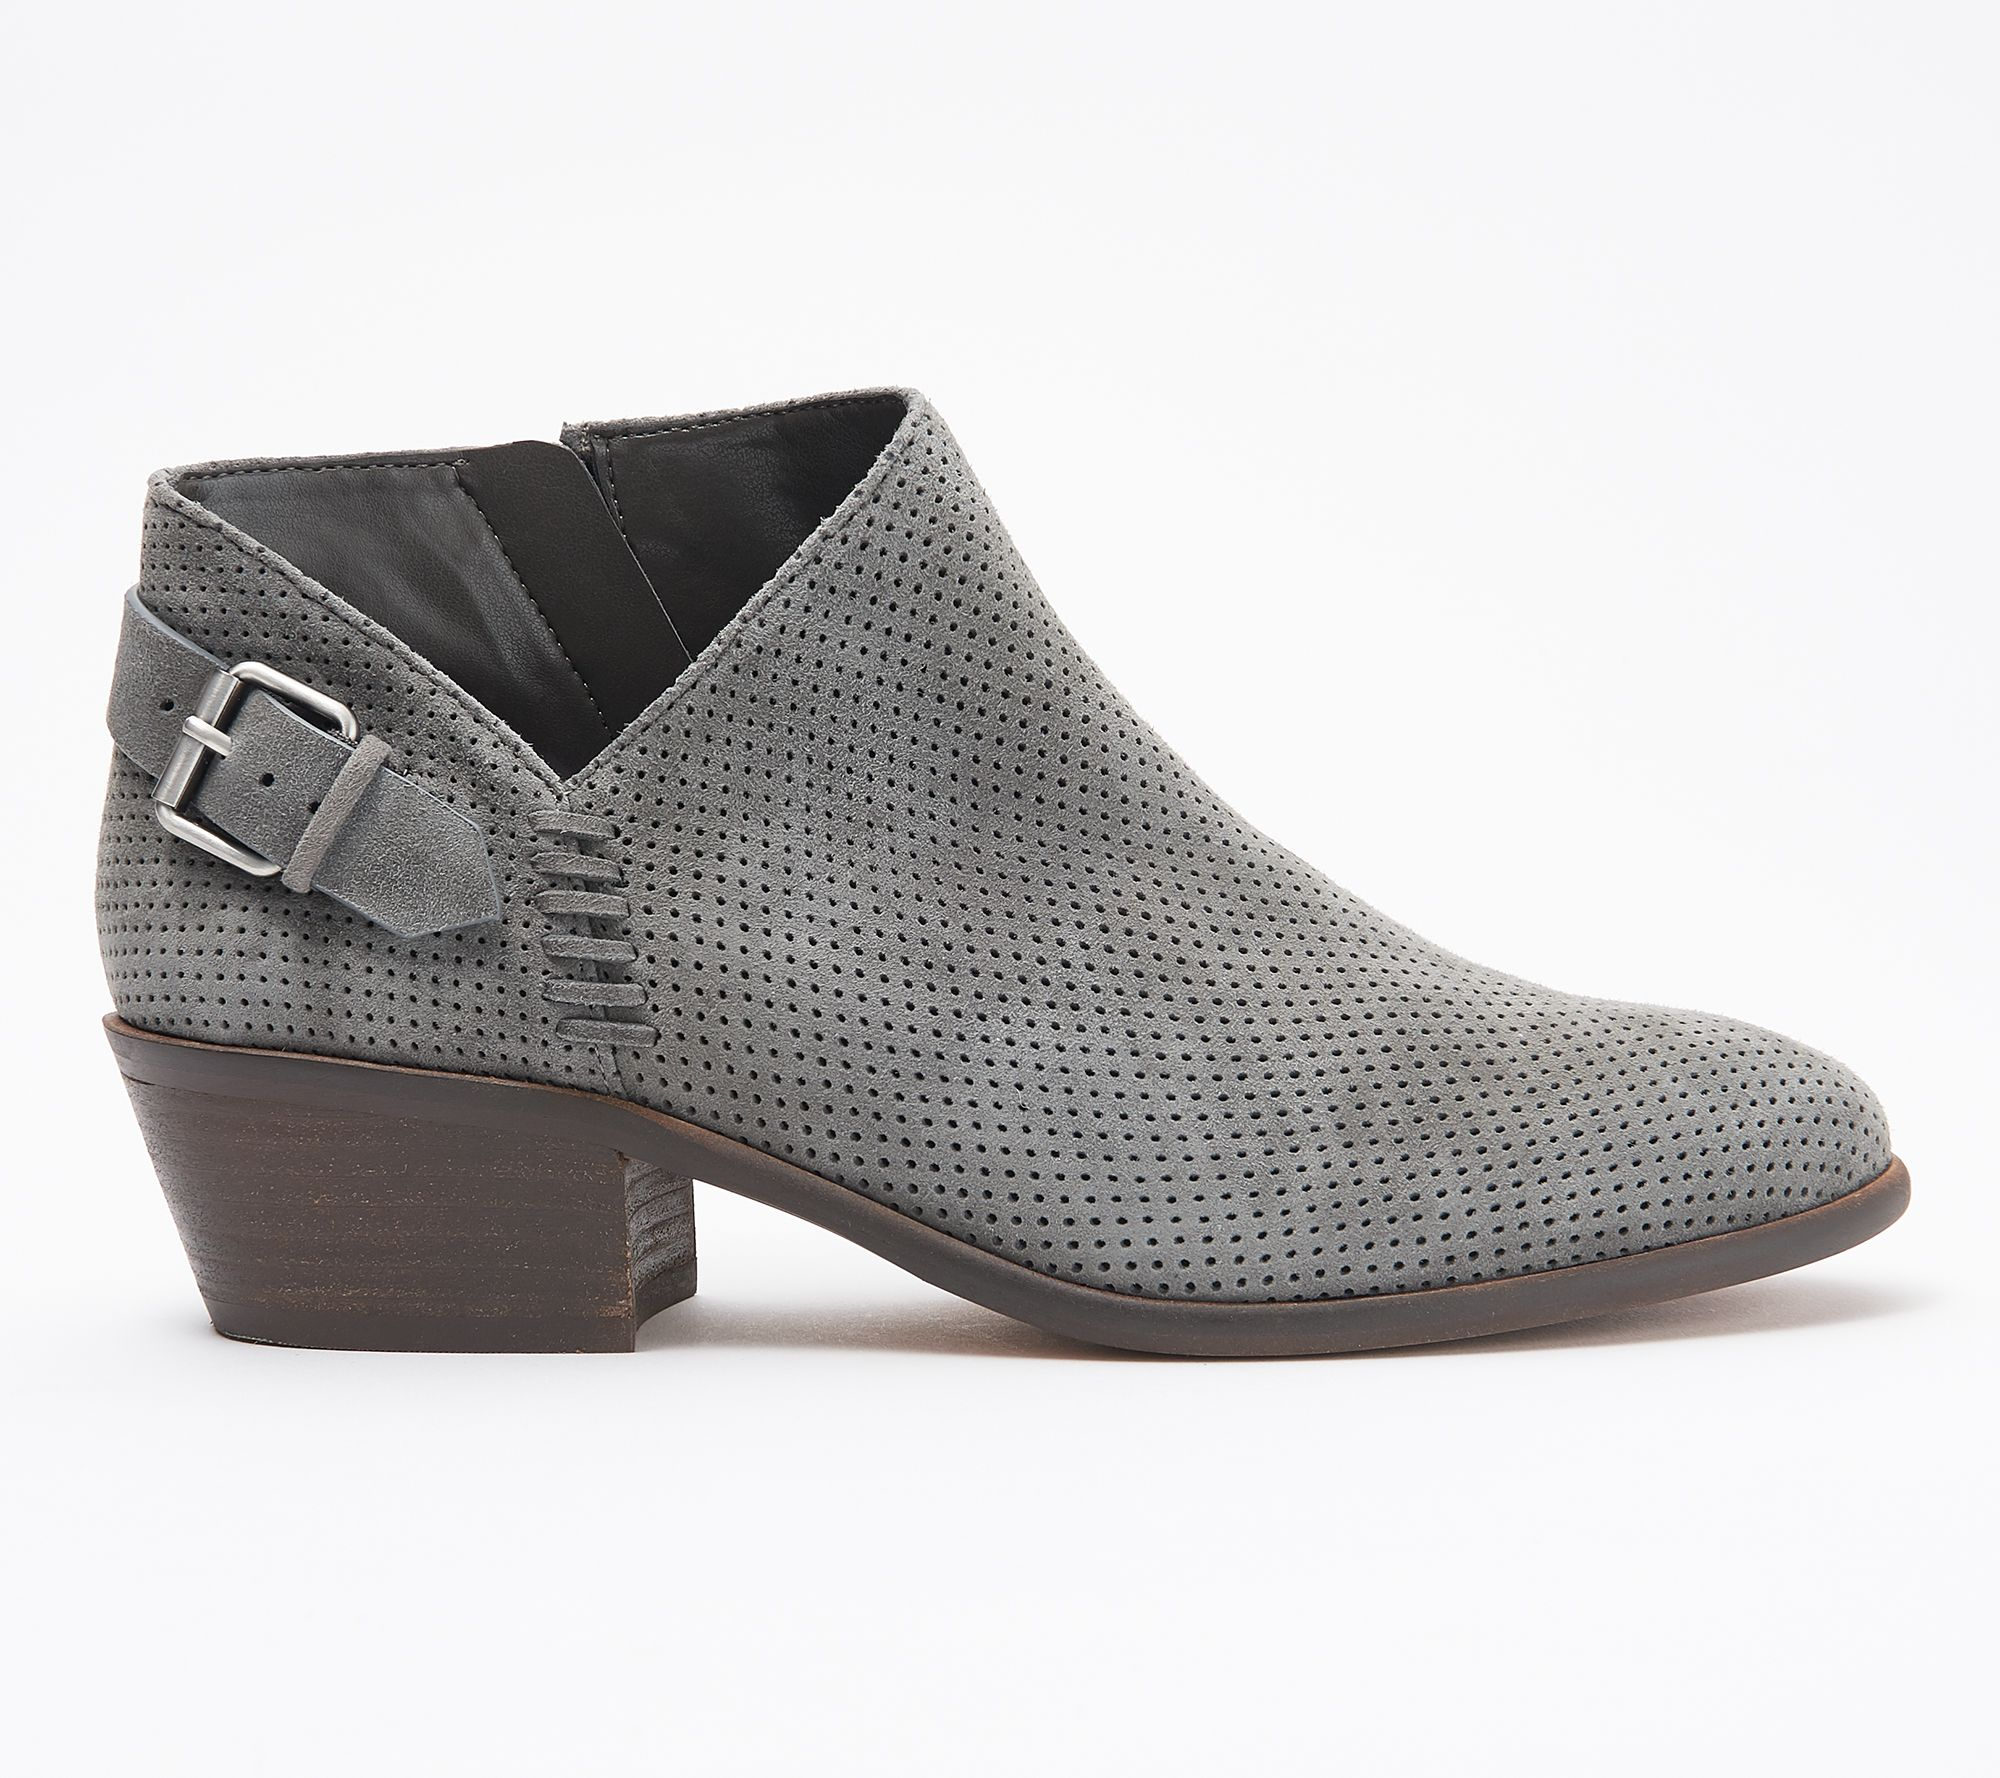 a63f569ebd Vince Camuto Suede Booties with Buckle Detail - Parveen - Page 1 — QVC.com